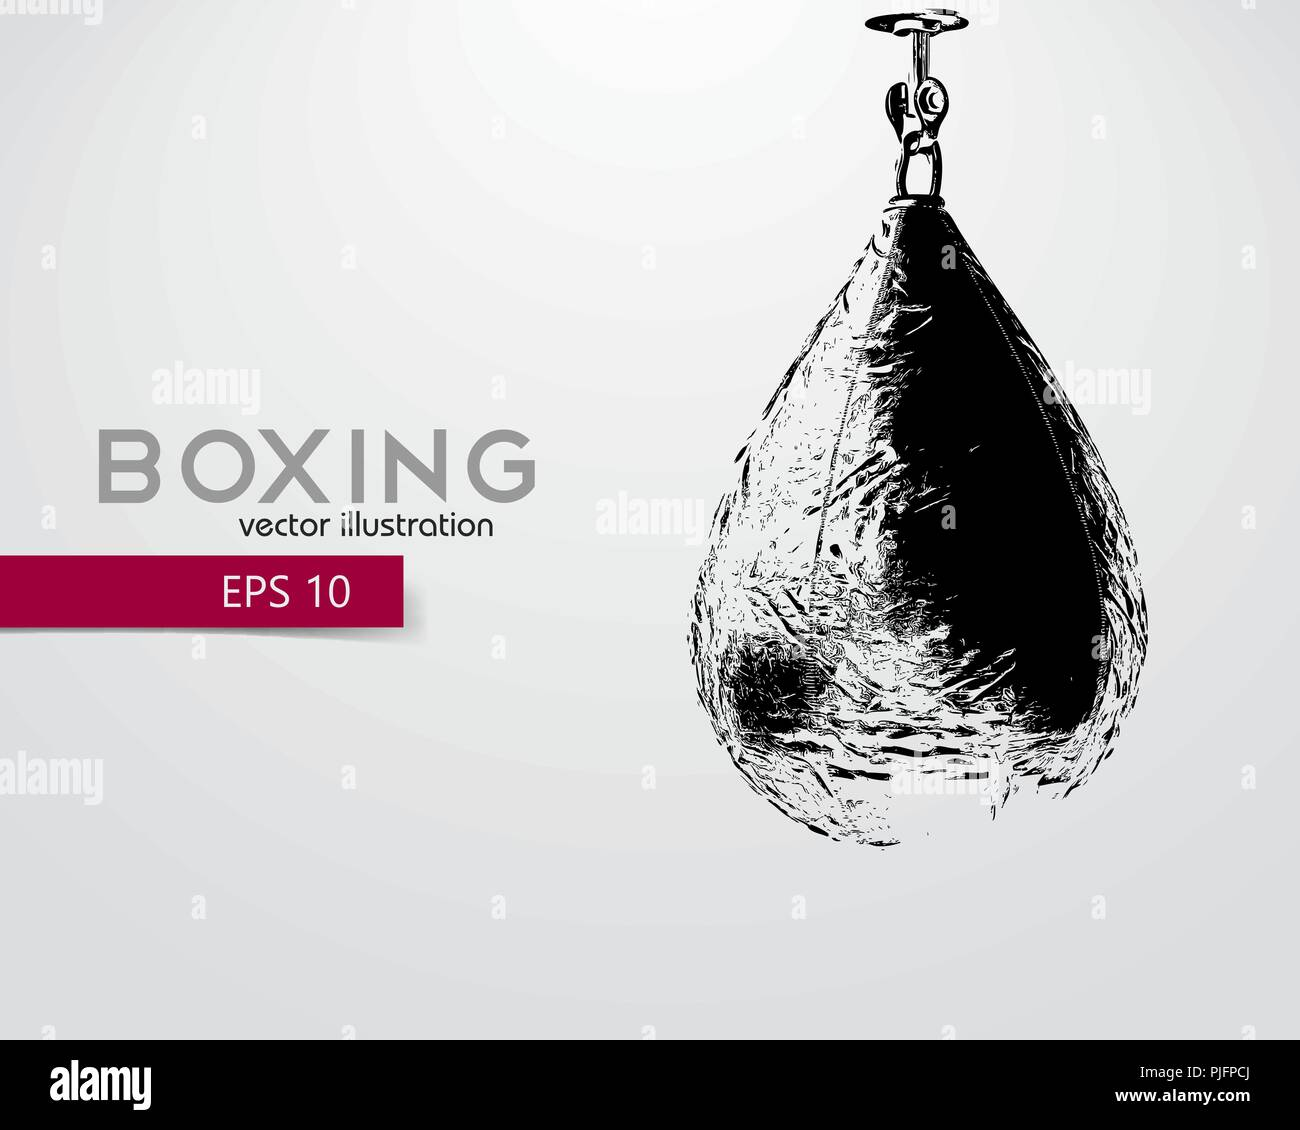 Punching bag silhouette. Background and text on a separate layer, color can be changed in one click. Boxer. Boxing. Punching bag silhouette - Stock Vector